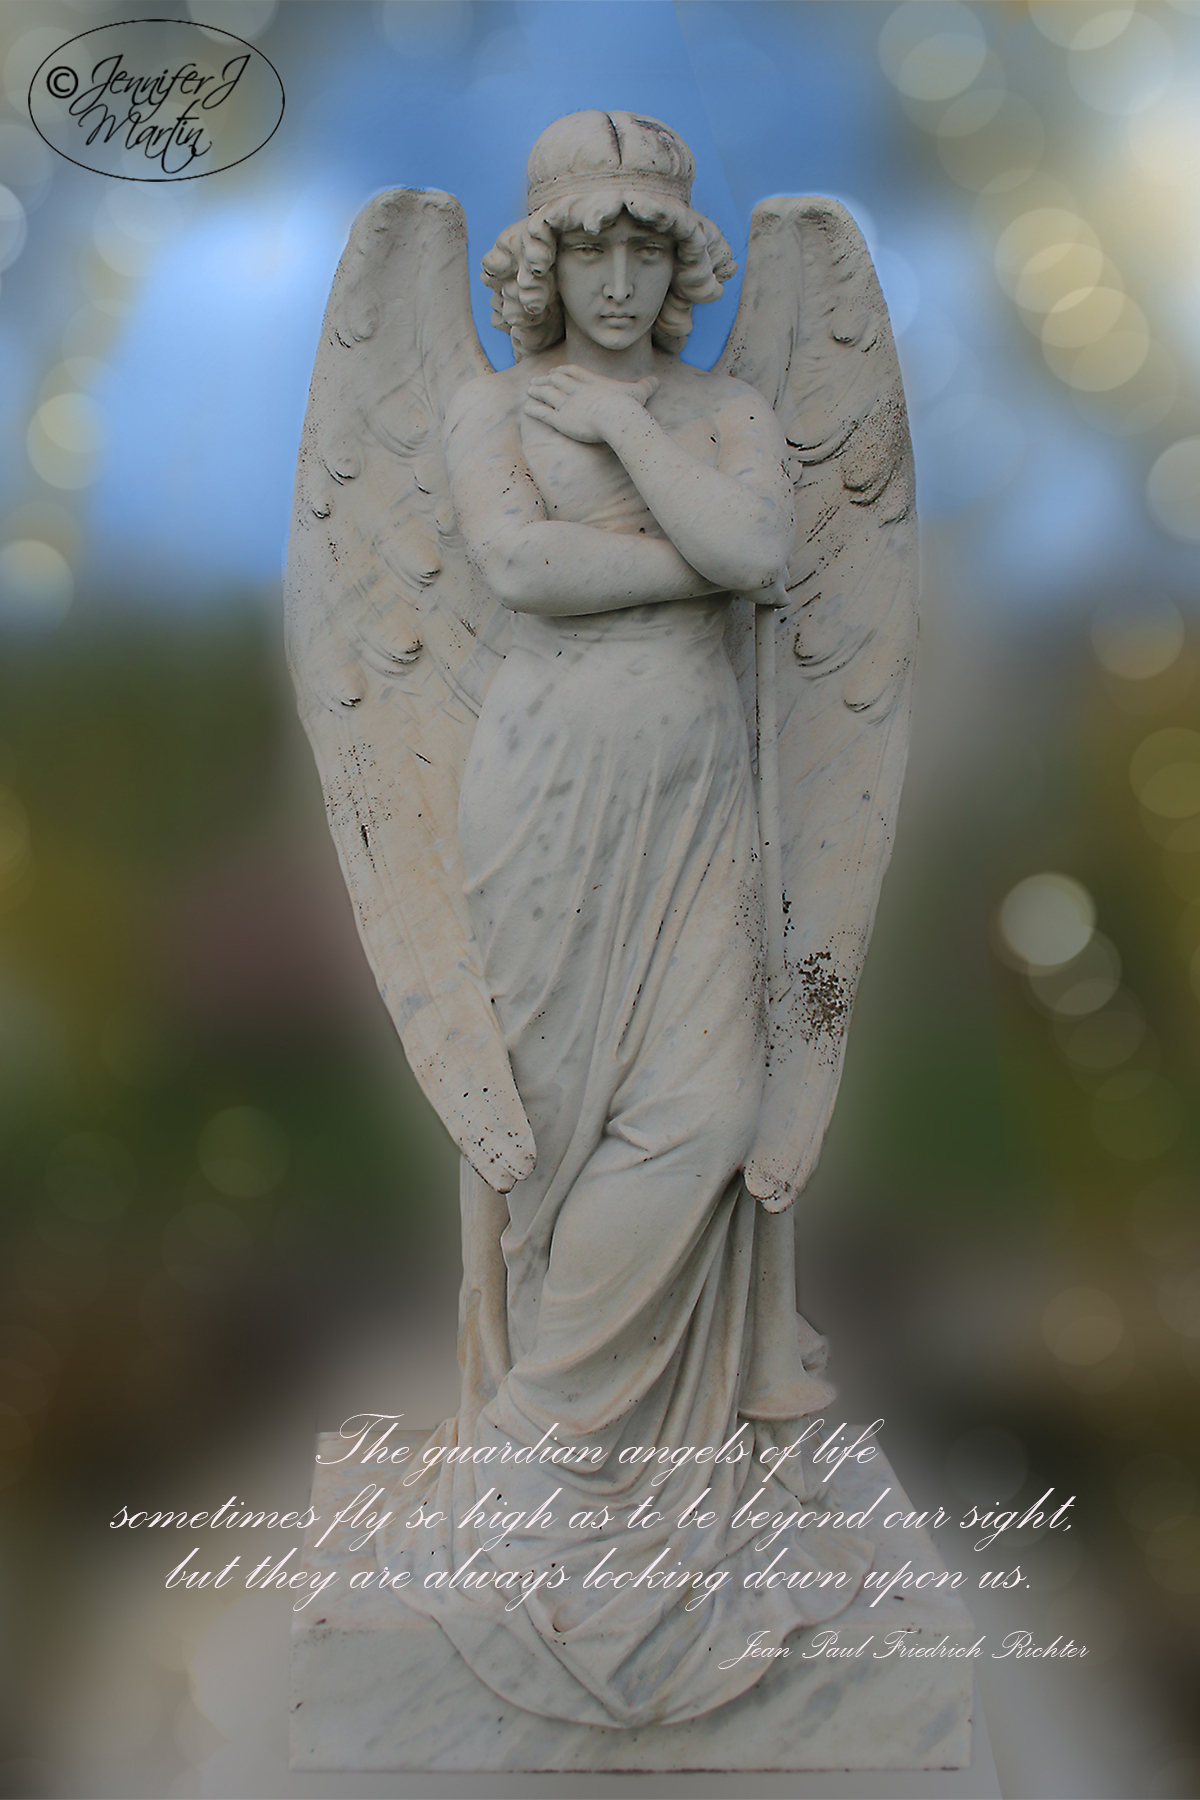 Guardian Angel (With guardian angel quote)